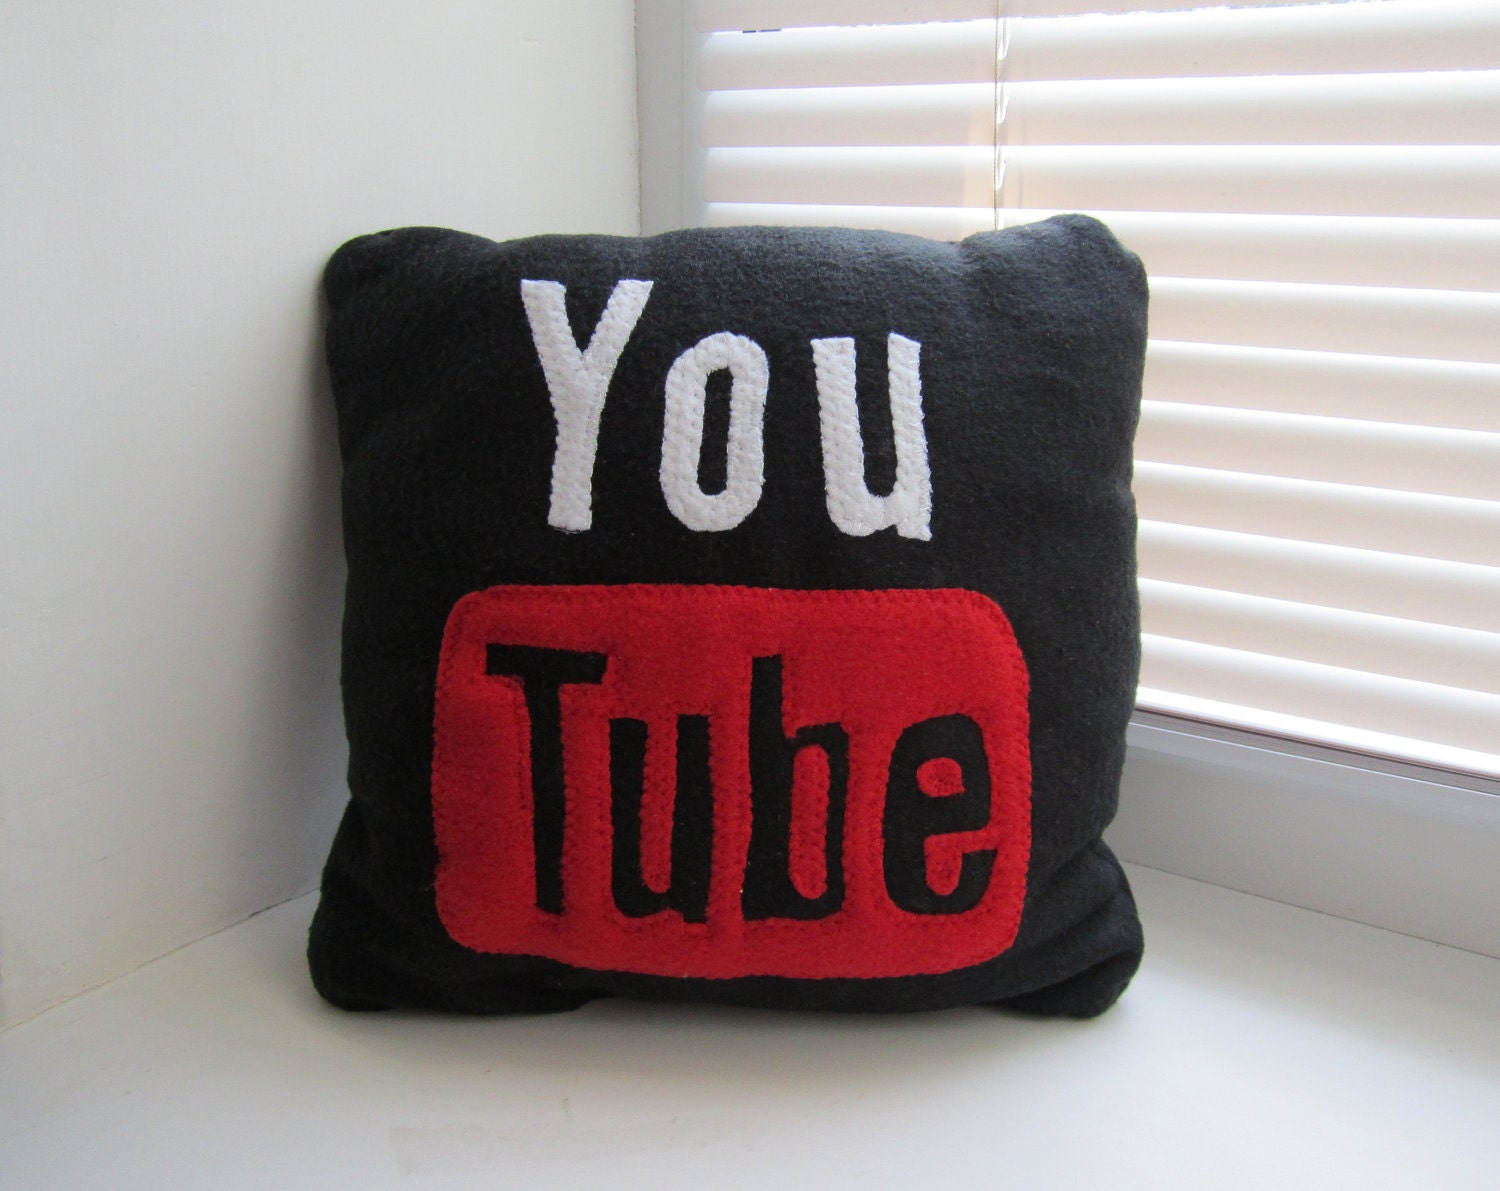 12 x 12 Black Youtube Pillow Handmade Geekery by giftpillows